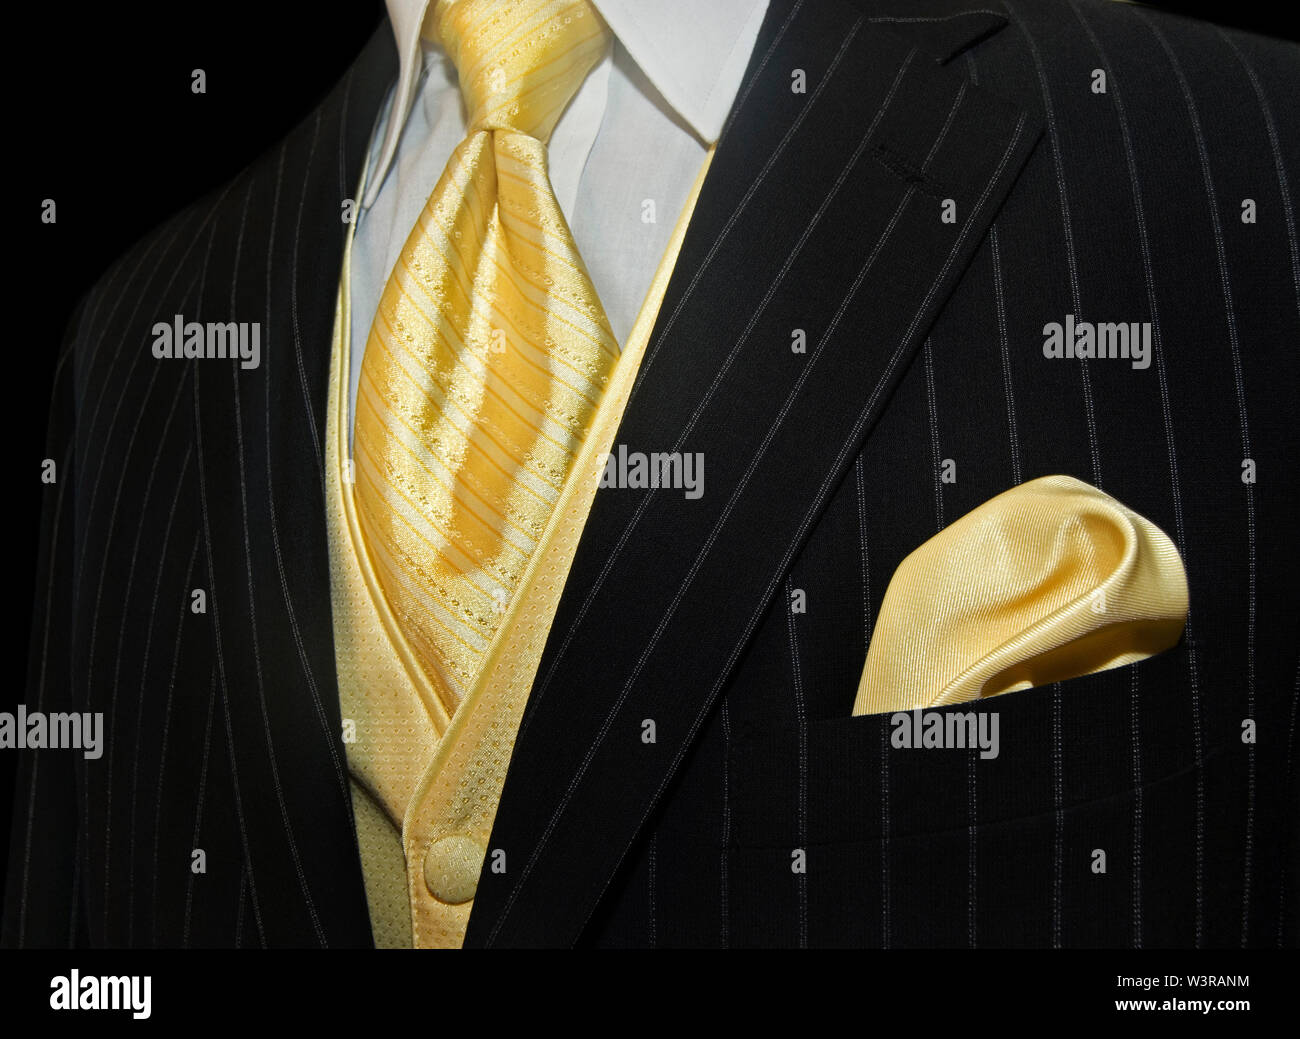 yellow tie and handkerchief accenting pinstriped tuxedo - Stock Image